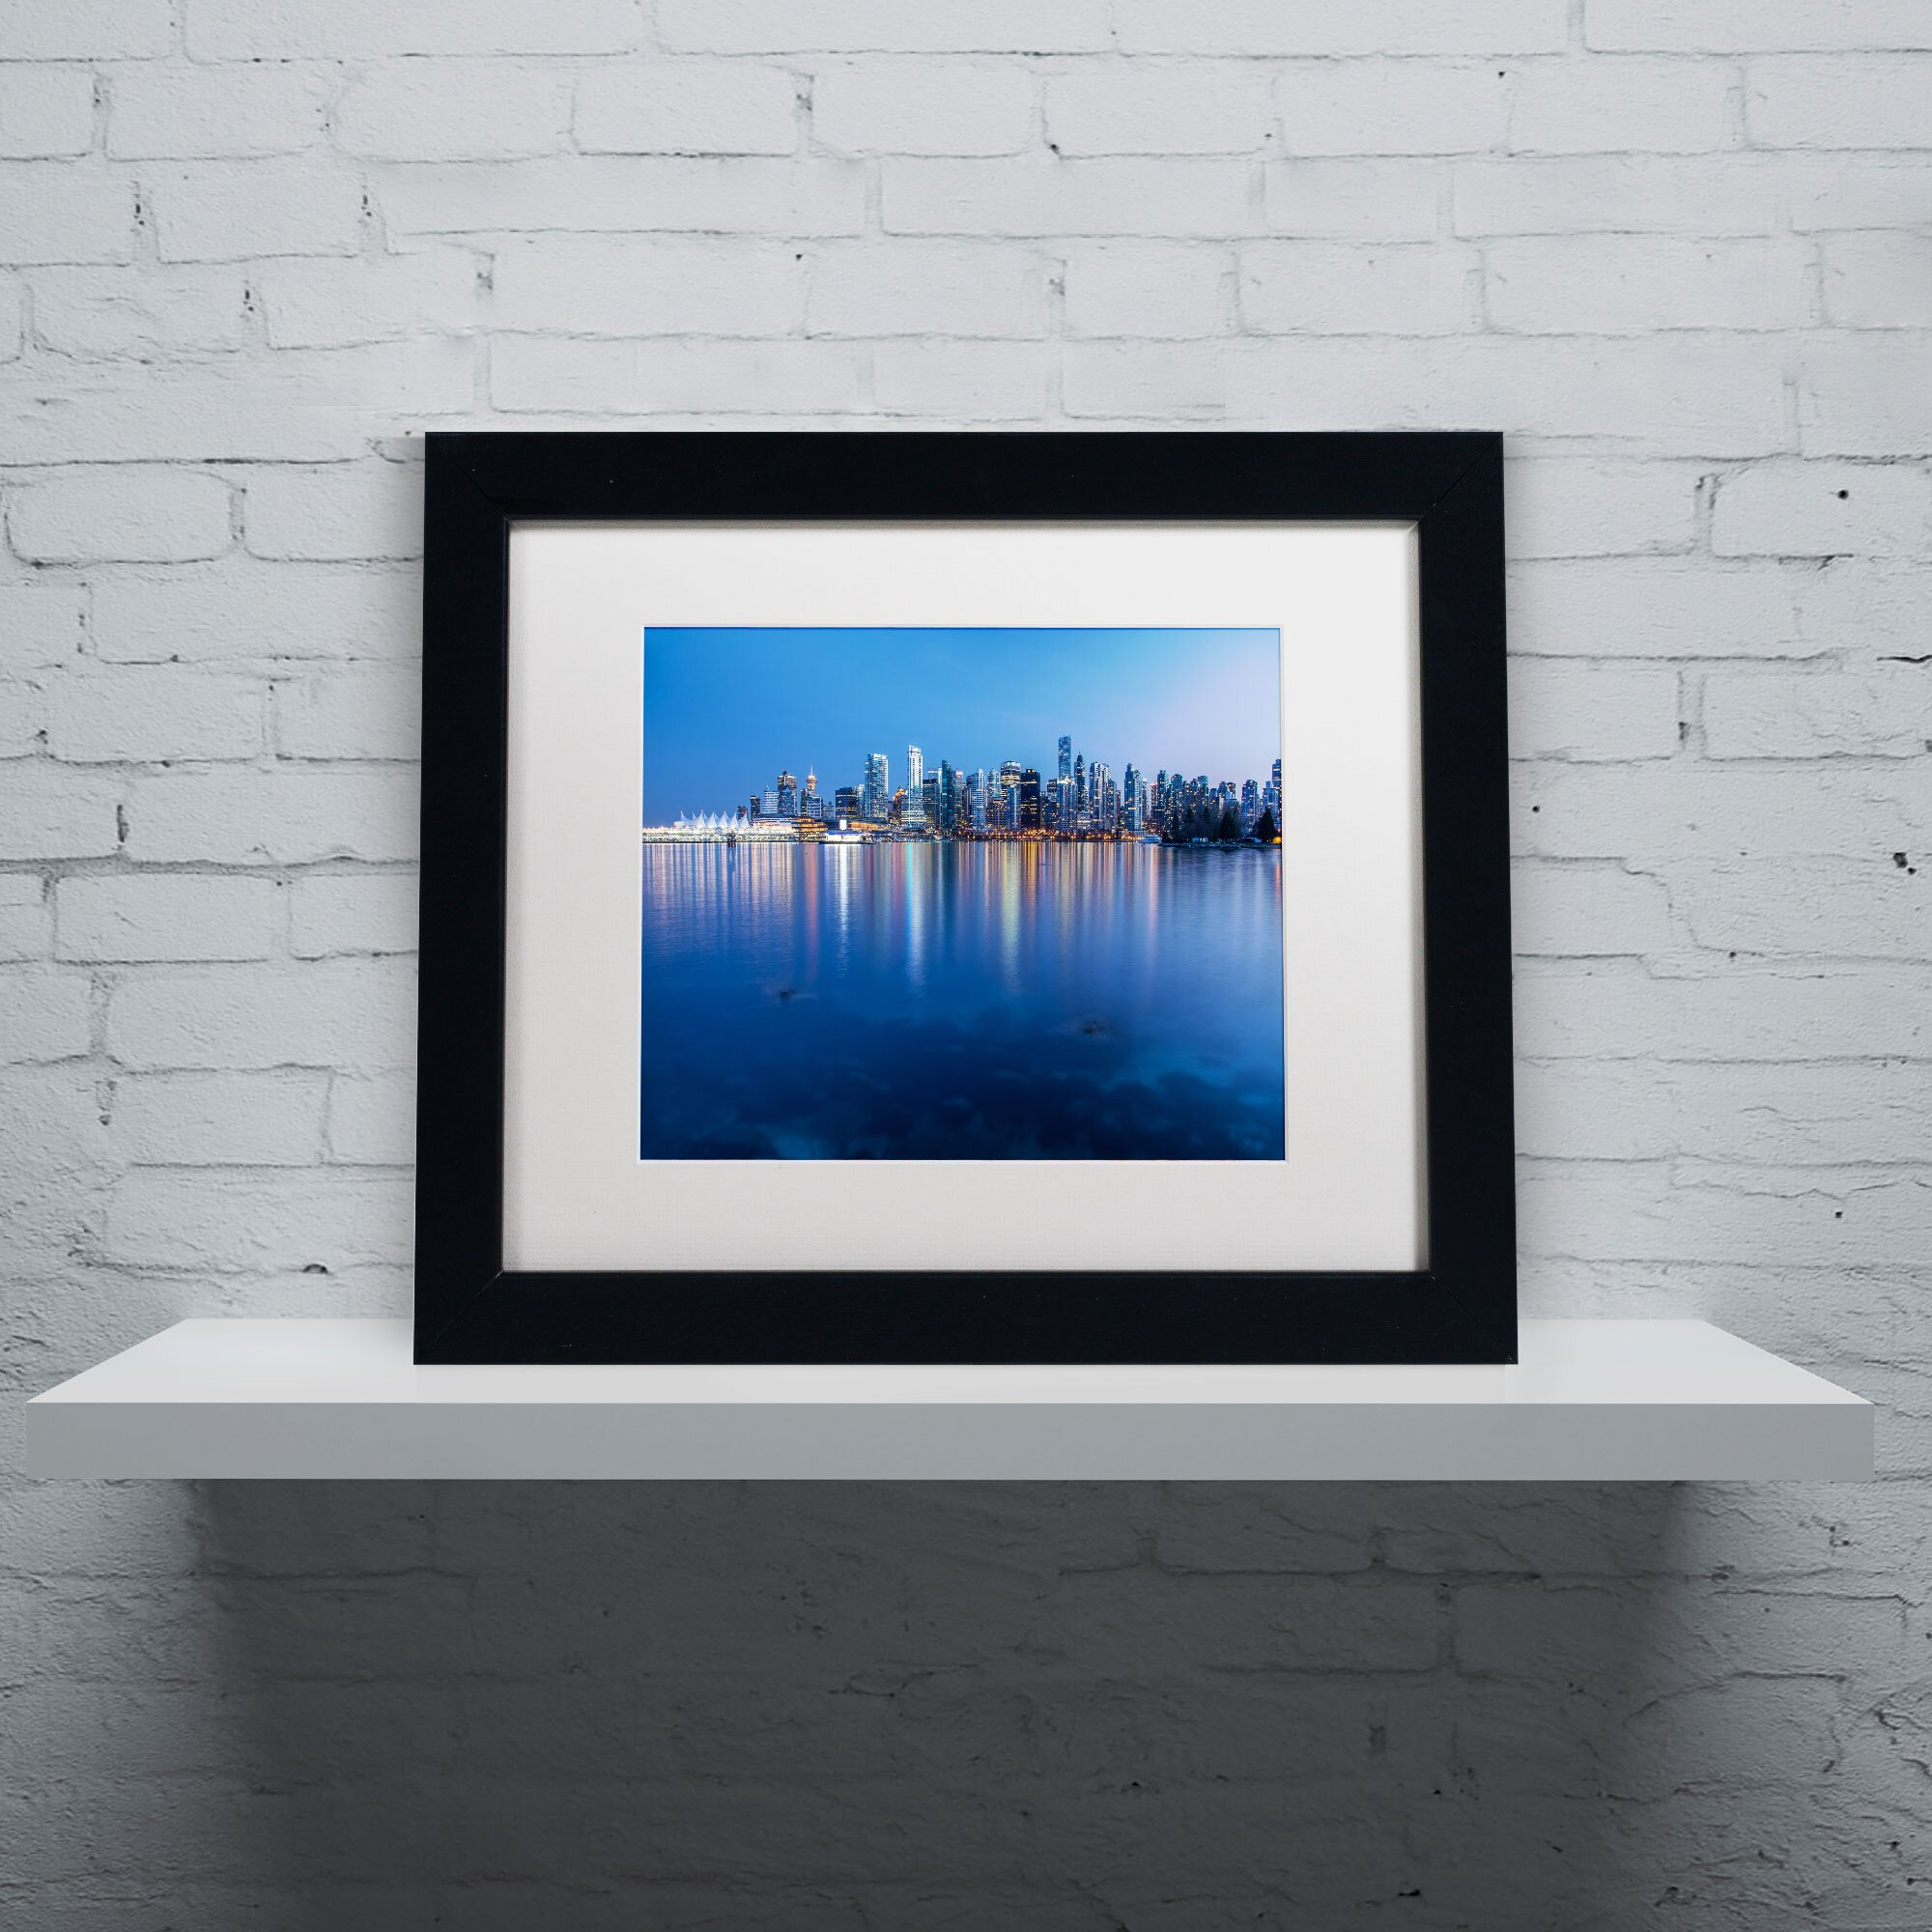 Trademark Art Vancouver City Reflection by Pierre  : Trademark Fine Art Vancouver City Reflection by Pierre Leclerc Framed Photographic Print from www.wayfair.com size 2000 x 2000 jpeg 397kB